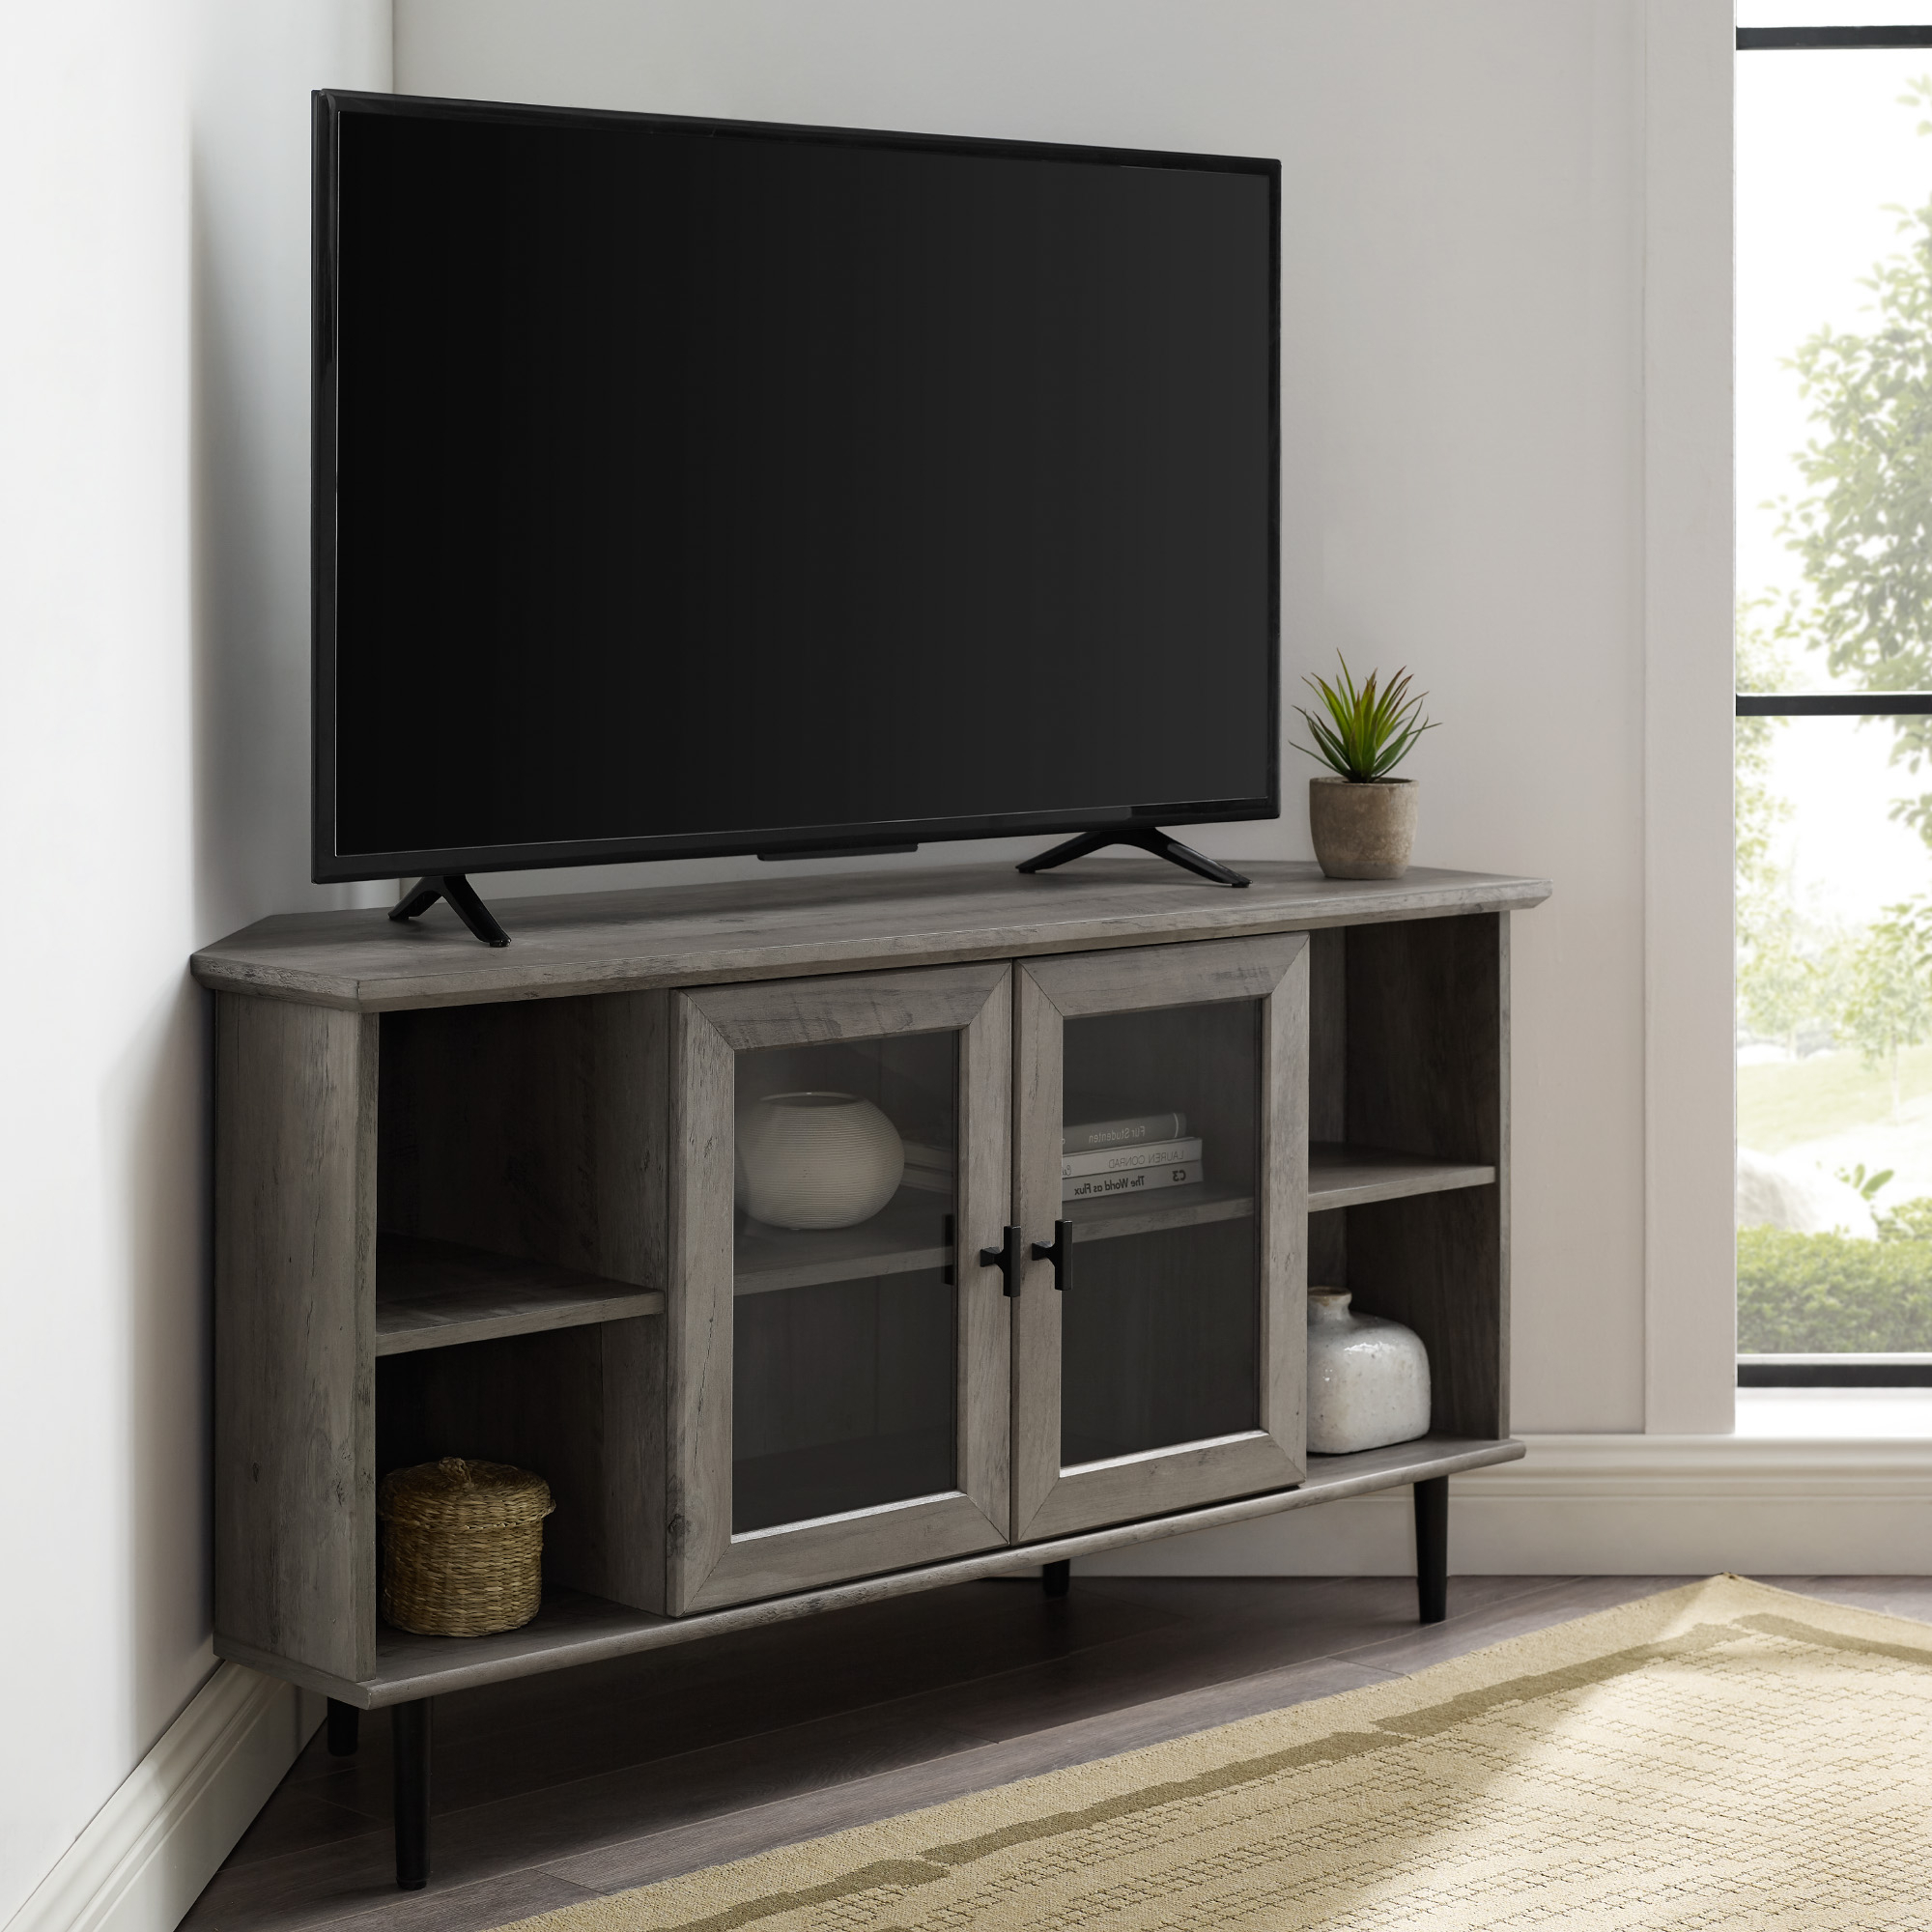 """Manor Park Glass Door Corner Tv Stand For Tvs Up To 55 Inside Spellman Tv Stands For Tvs Up To 55"""" (View 1 of 20)"""